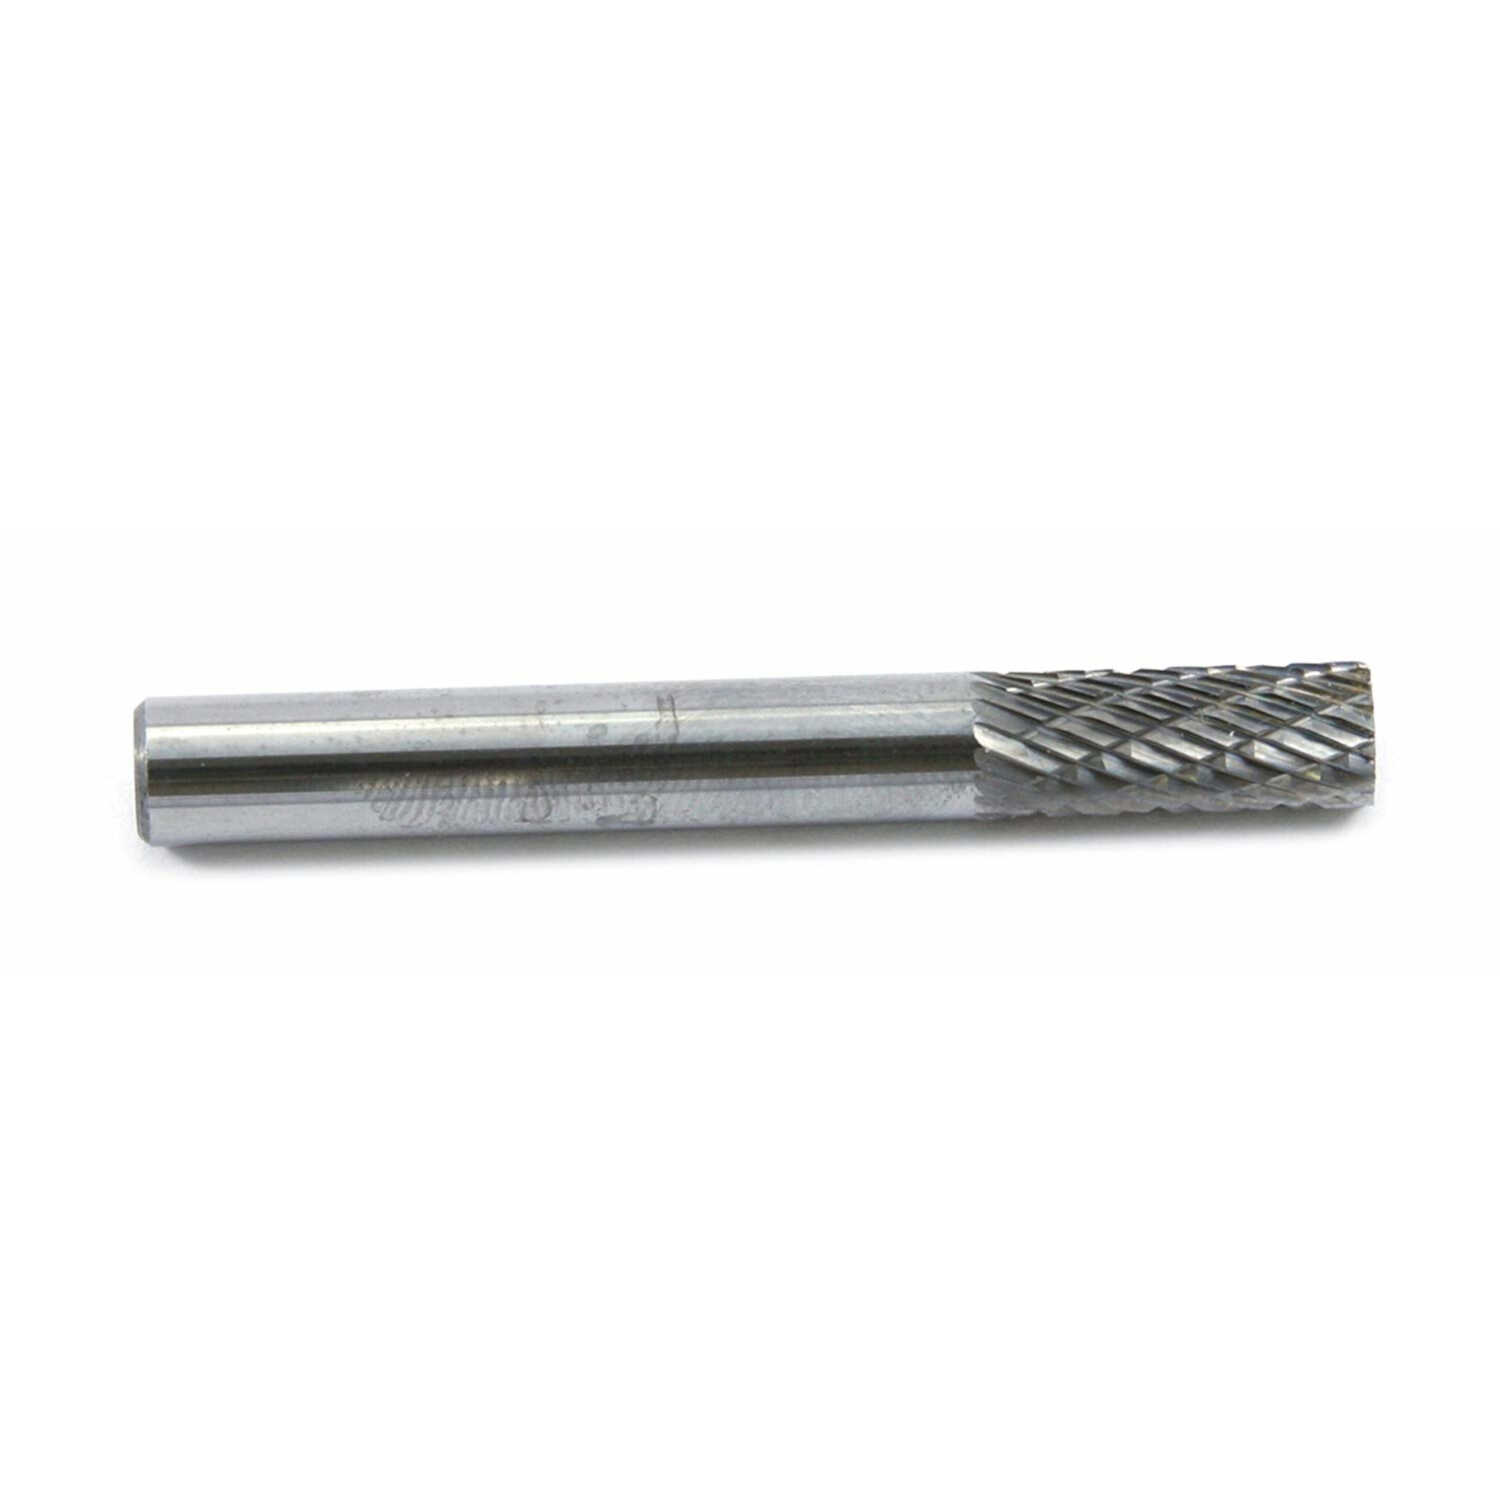 Forney  1/4 in. Dia. x 2.5 in. L Cylinder  Burr  Tungsten Carbide  1 pc.